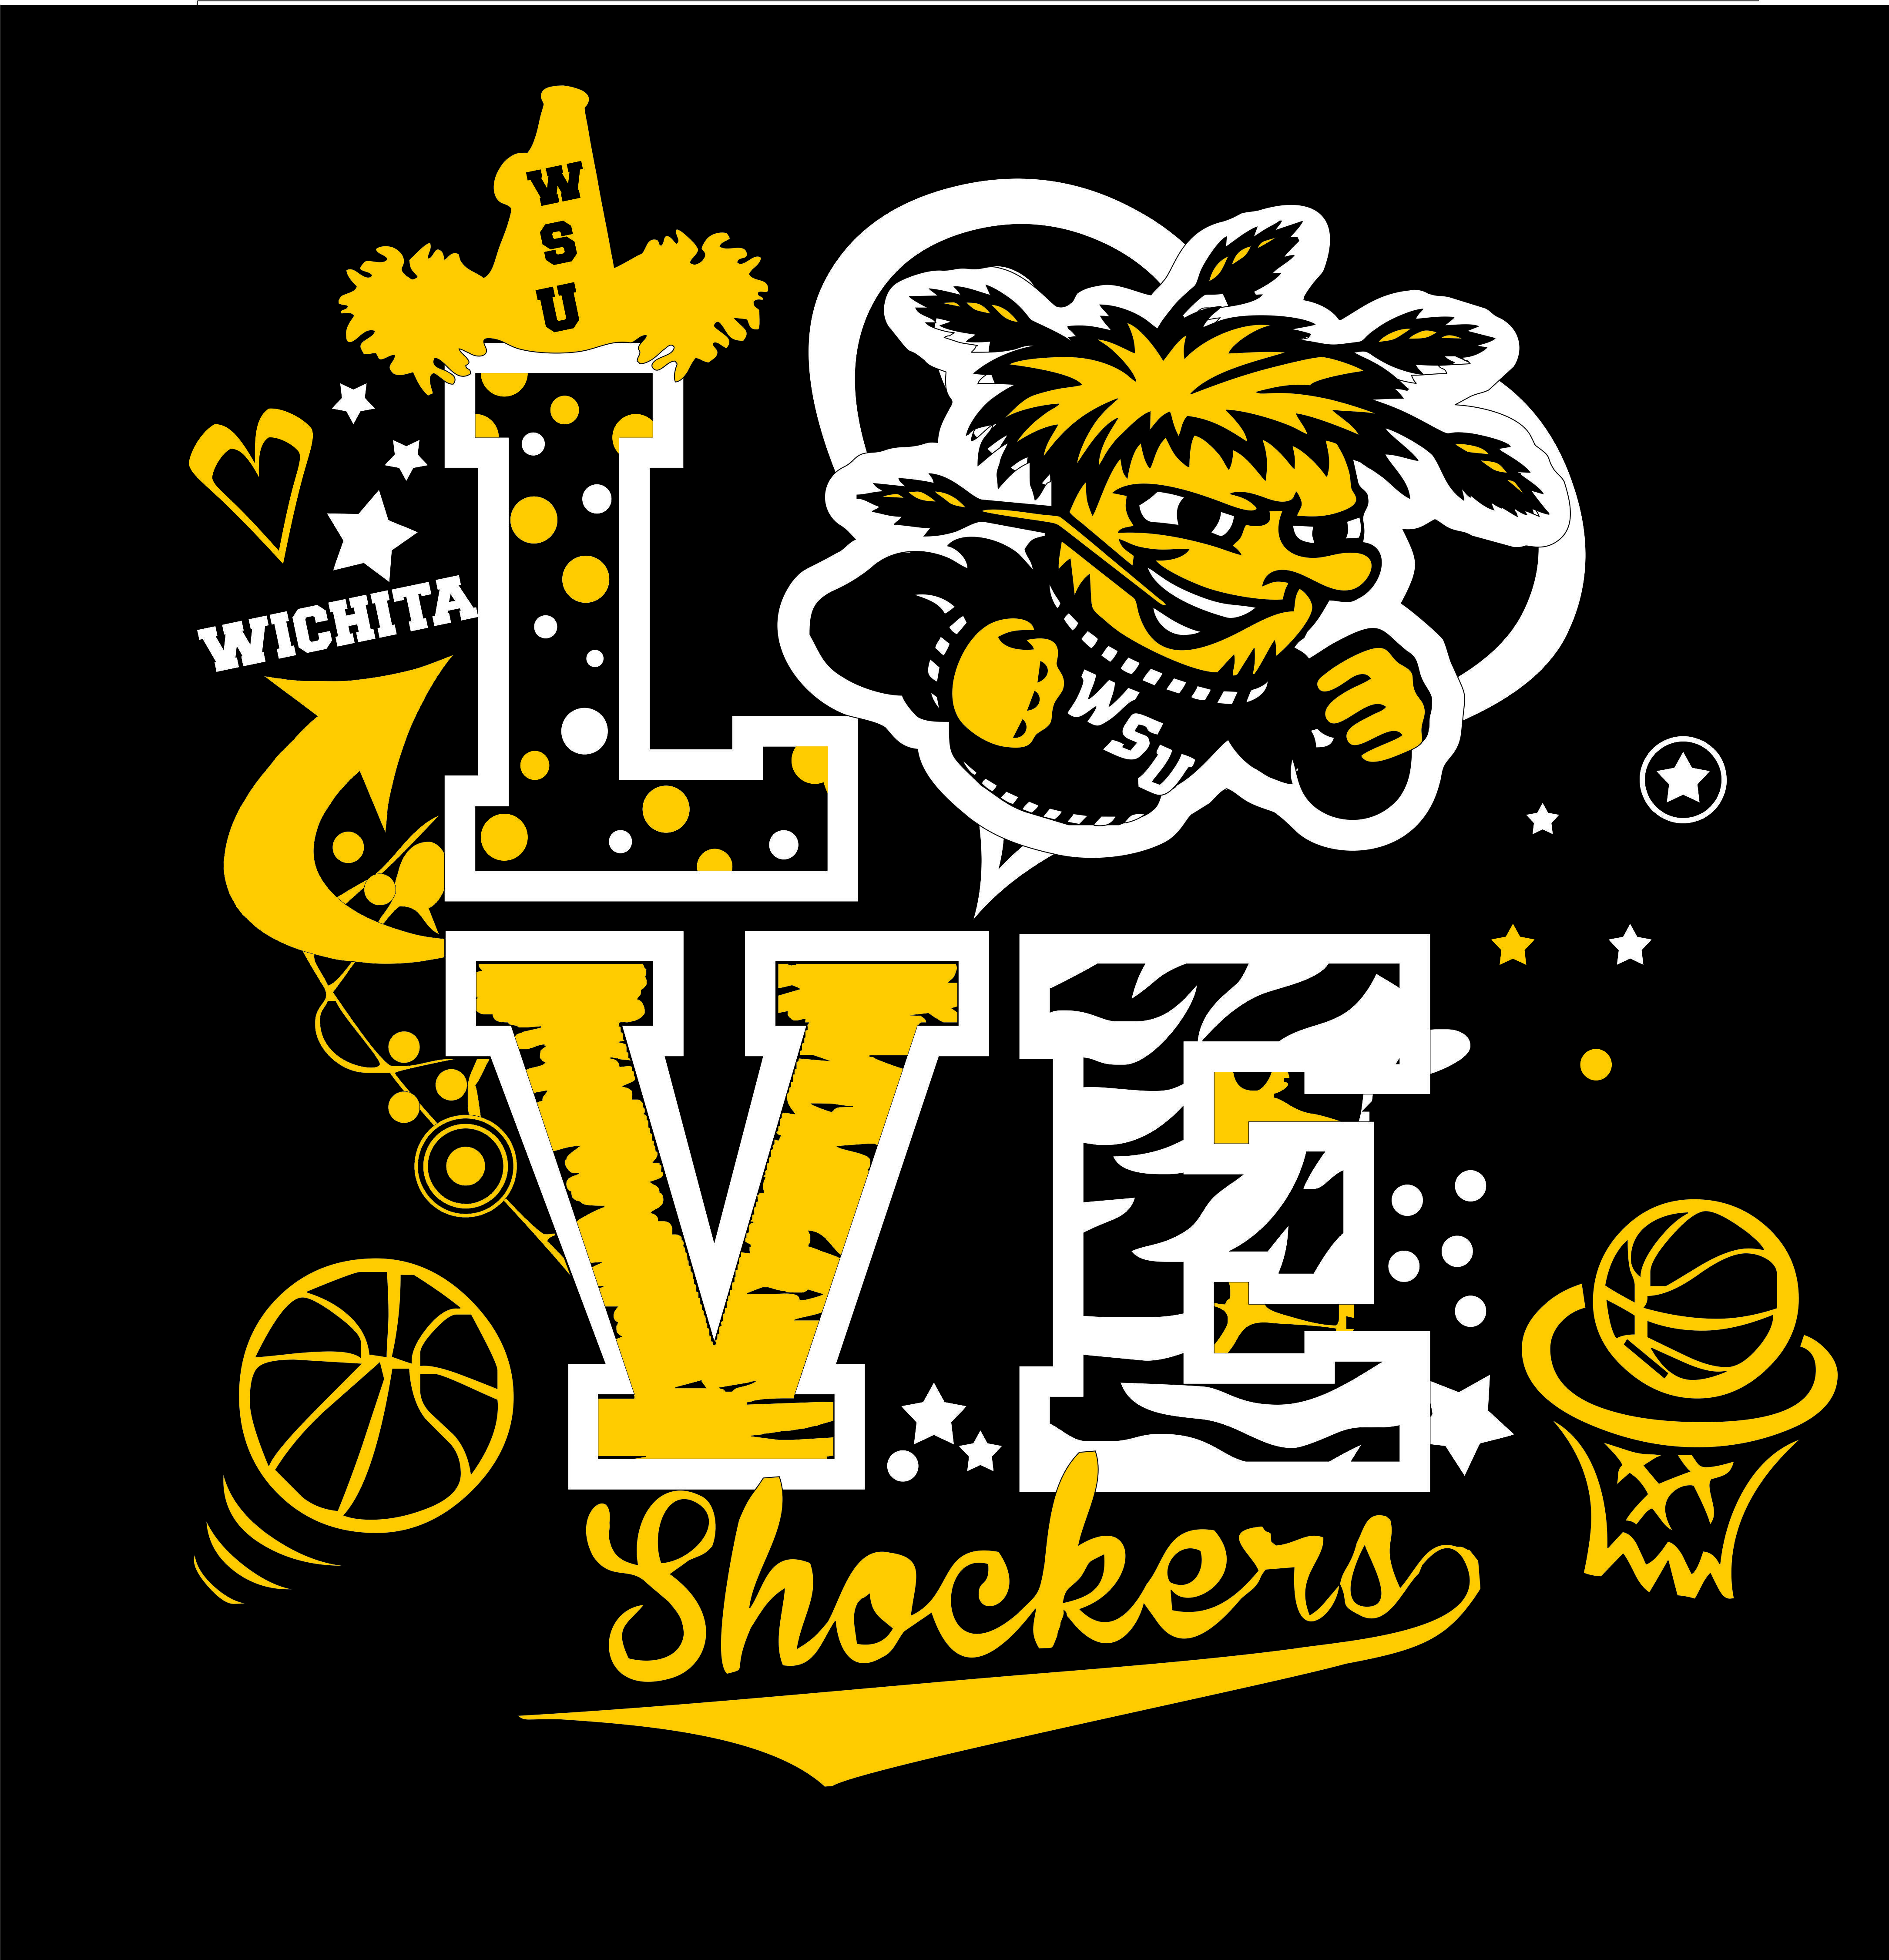 Wichita State Shocker T Shirt Design By Whitefish Creations